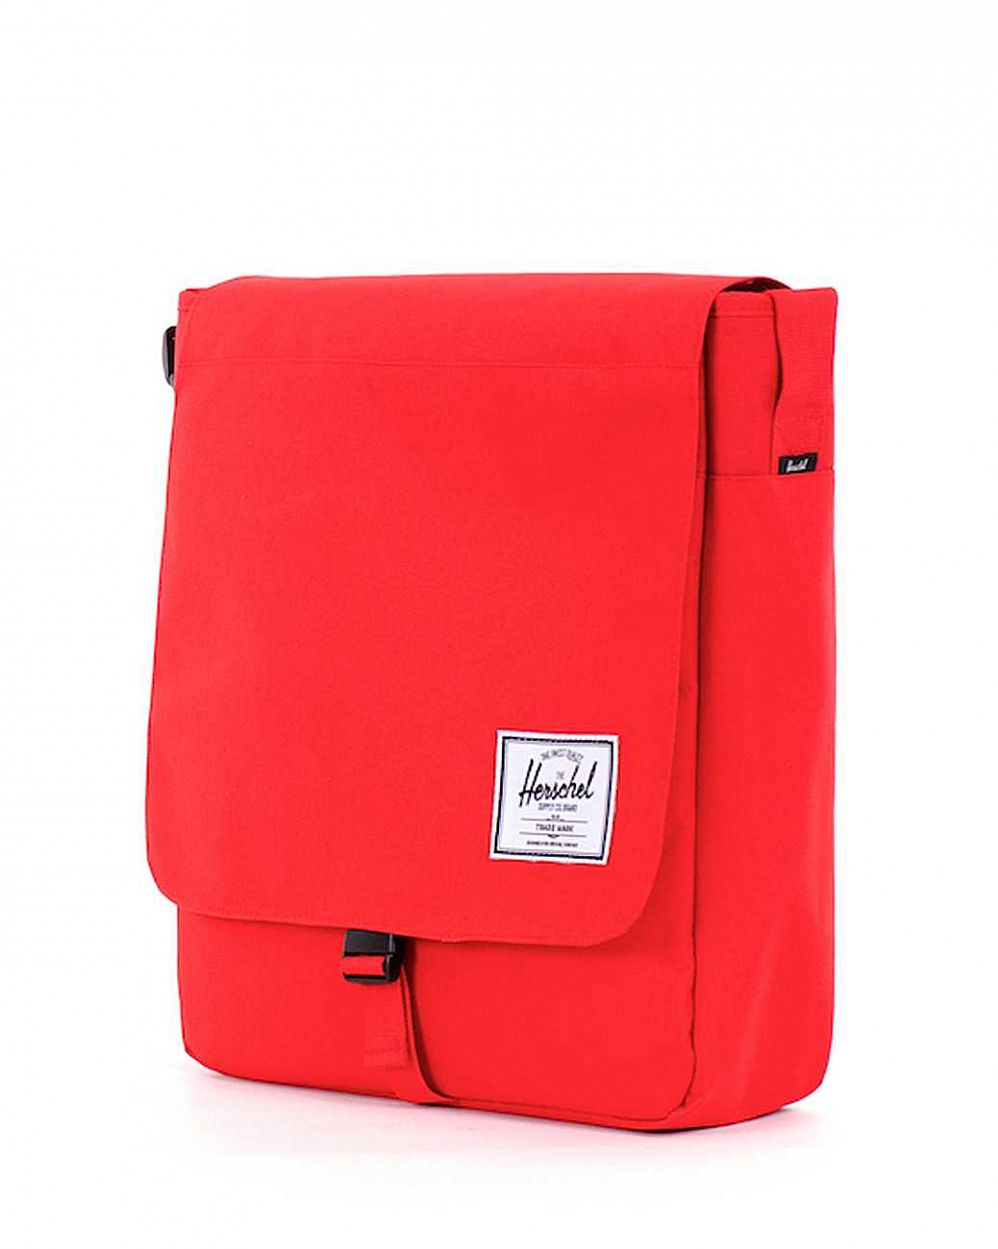 Сумка Herschel Scottie Red интернет-магазин в Москве